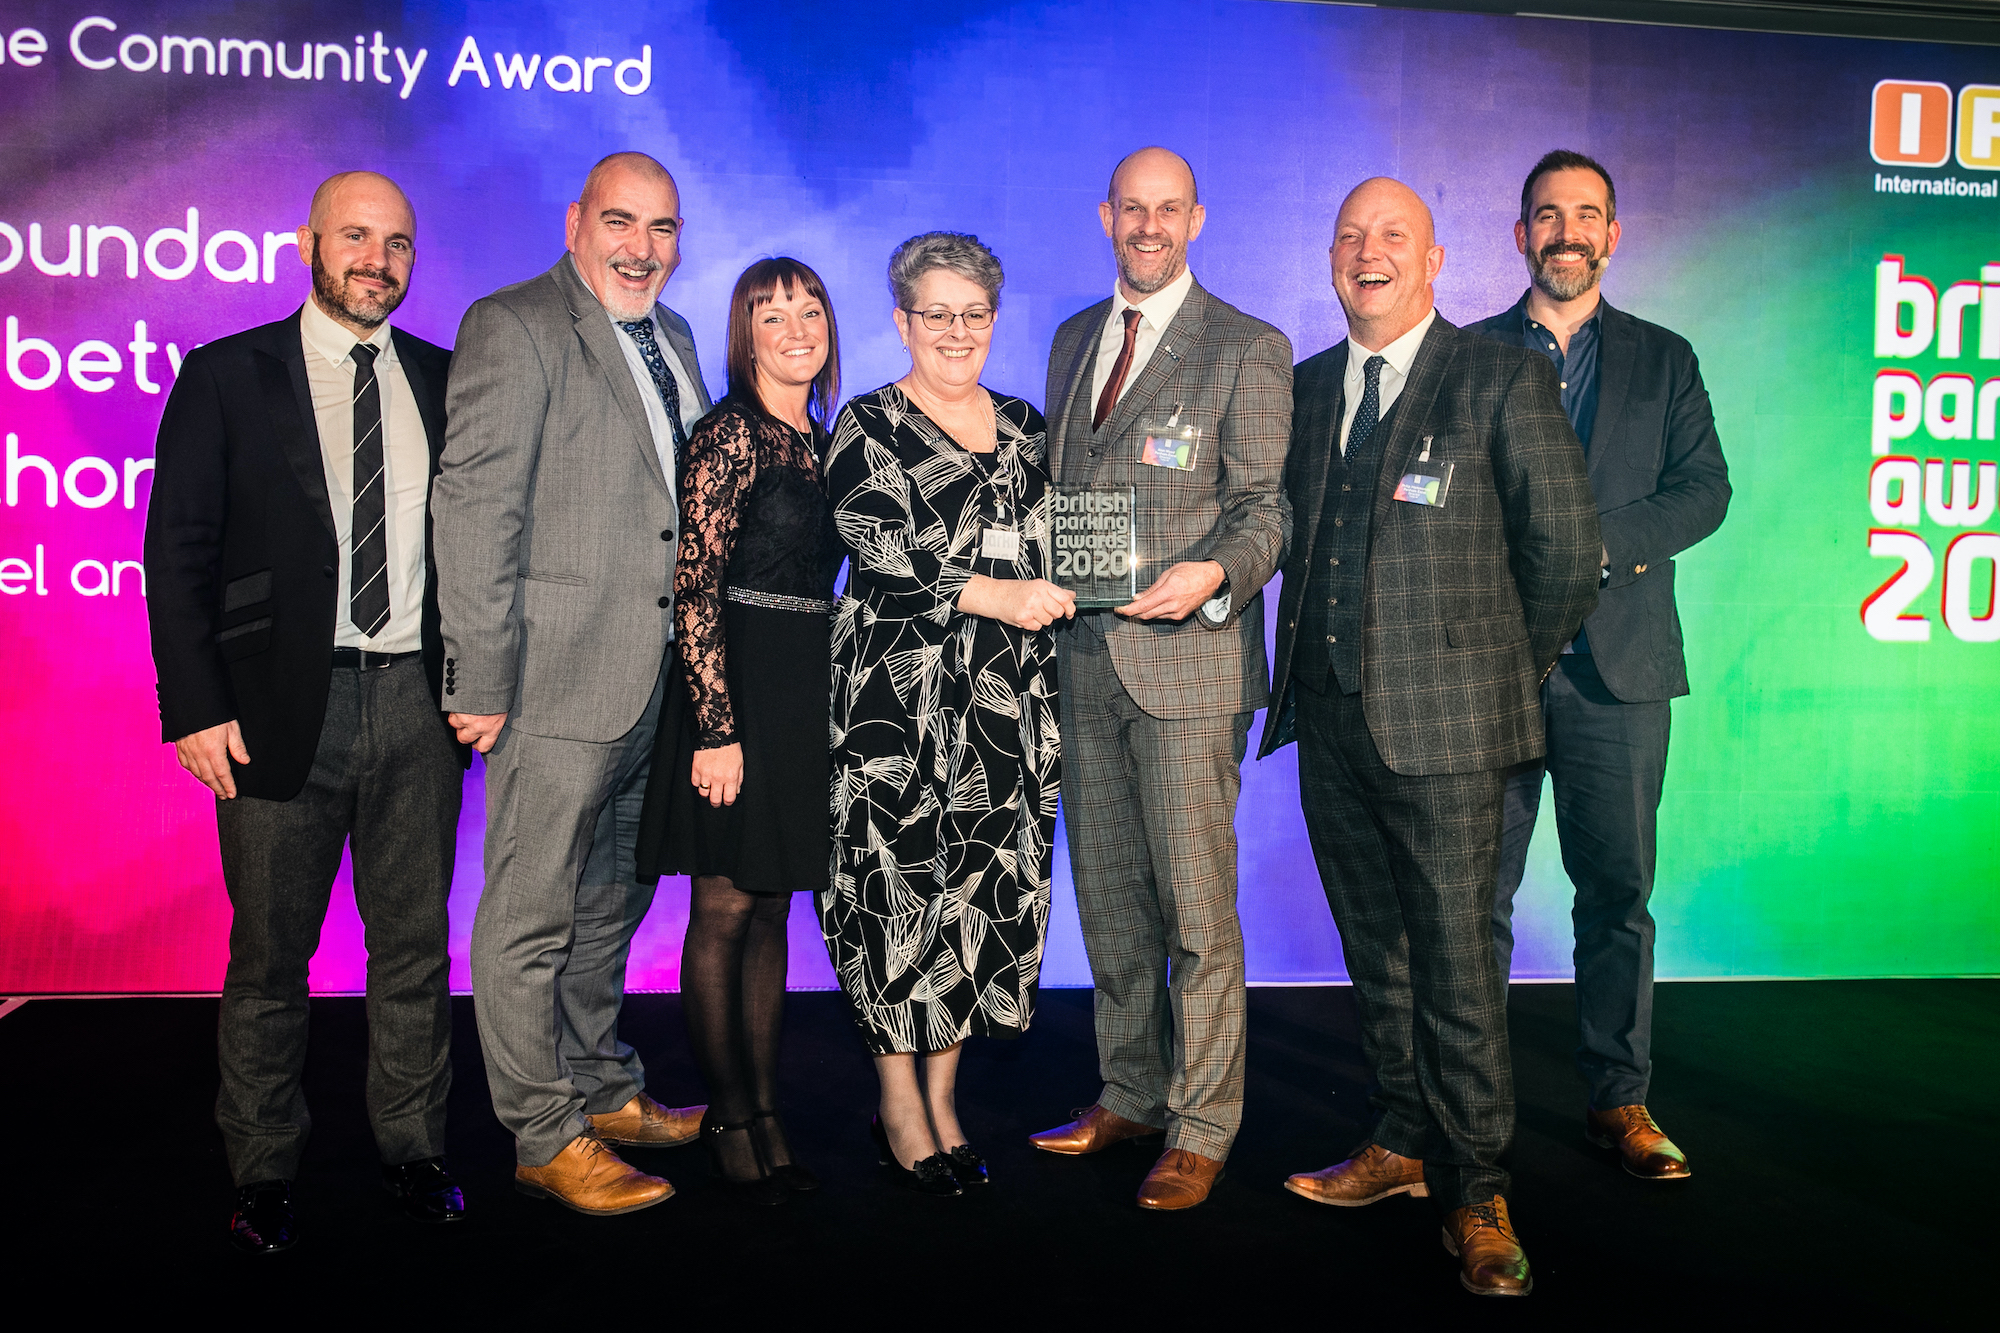 Penham Excel and Walsall Council scoop top award